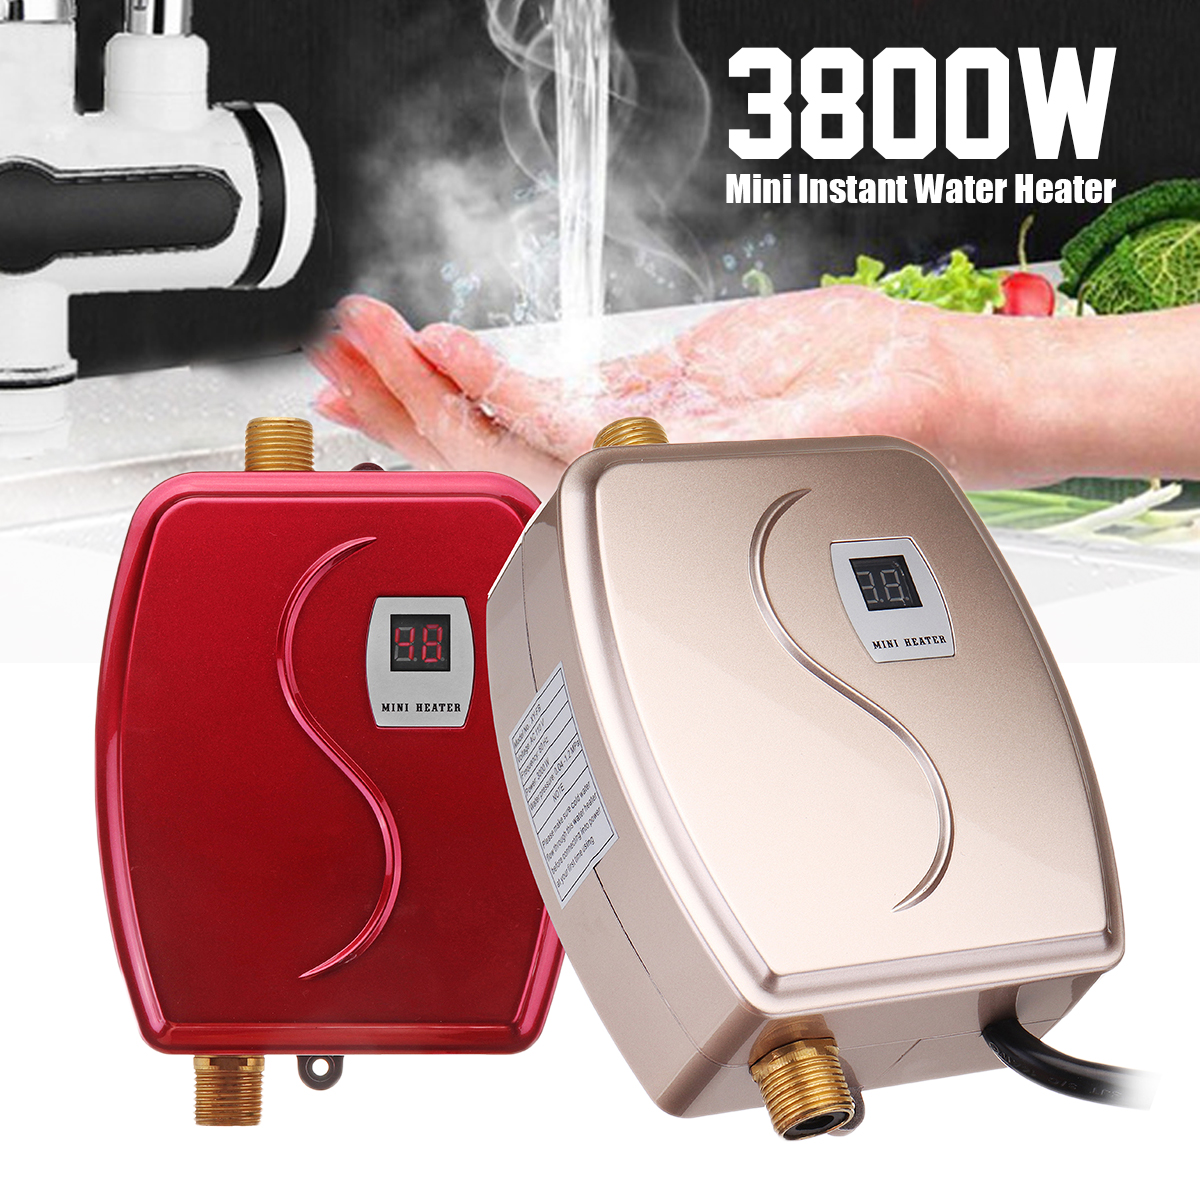 110V 3.8kW Smart Instant Electric Tankless Water Heater Constant Temperature Safety Hot Water System Appliance for Kitchen Washing Faucet Bathroom Shower Heating Tool